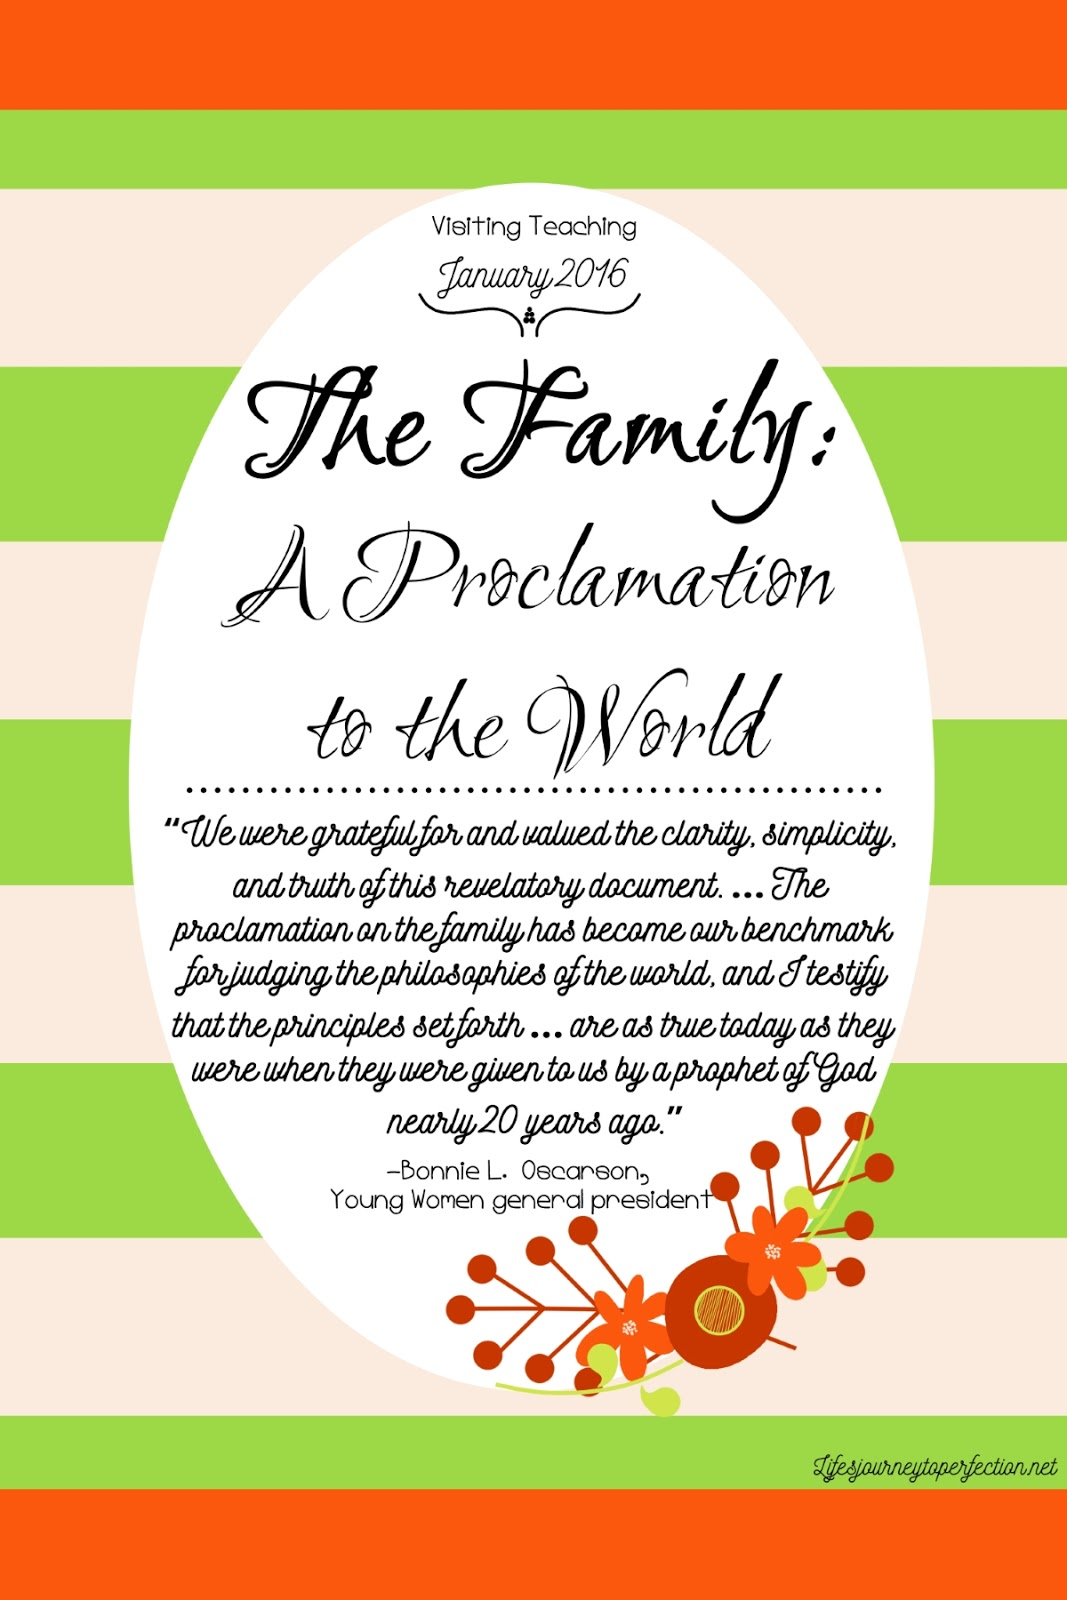 Lifes journey to perfection visiting teaching ideas for january lifes journey to perfection visiting teaching ideas for january 2016 the family a proclamation to the world negle Images